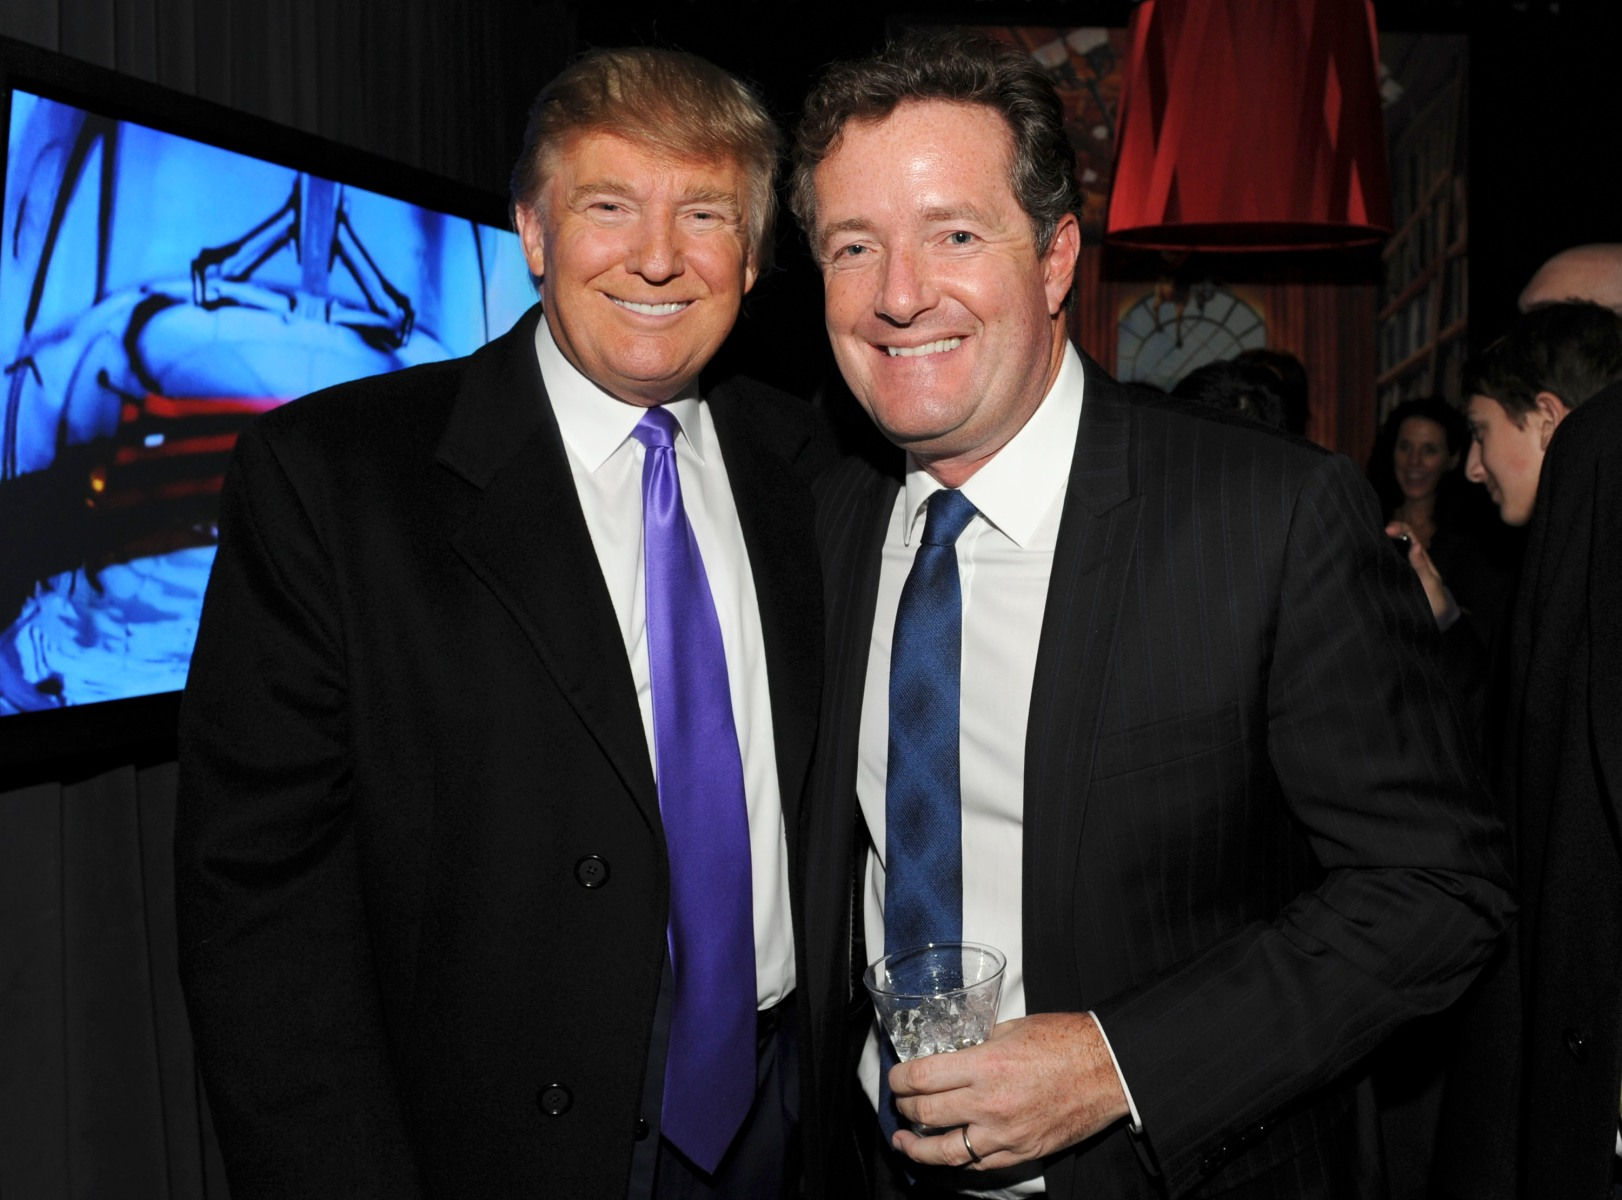 """Then-television personality Donald Trump and Piers Morgan attend the celebration of Perfumania and Kim Kardashians appearance on NBCs """"The Apprentice"""" at the Provocateur at The Hotel Gansevoort on November 10, 2010 in New York, New York.  (Photo by Mathew Imaging/WireImage)"""